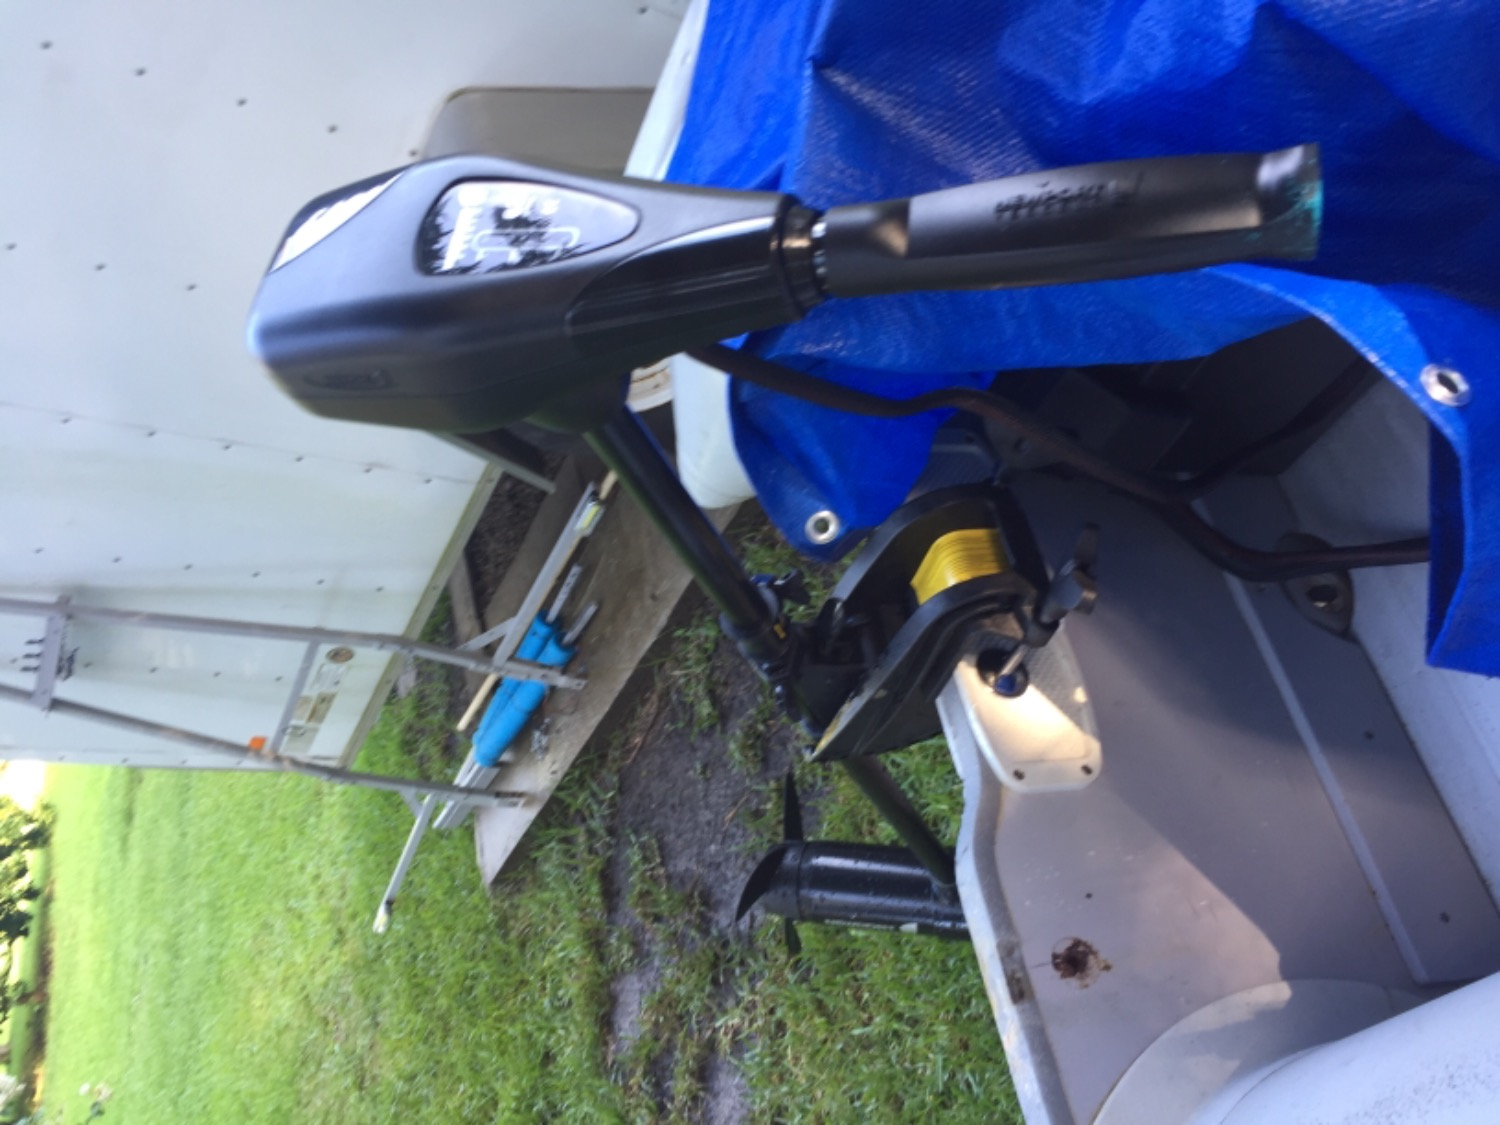 Electric Trolling Motor 62lb Thrust Nv Series Minn Kota Wiring Diagram Motorcycle Review And Raymond S Verified Customer Of